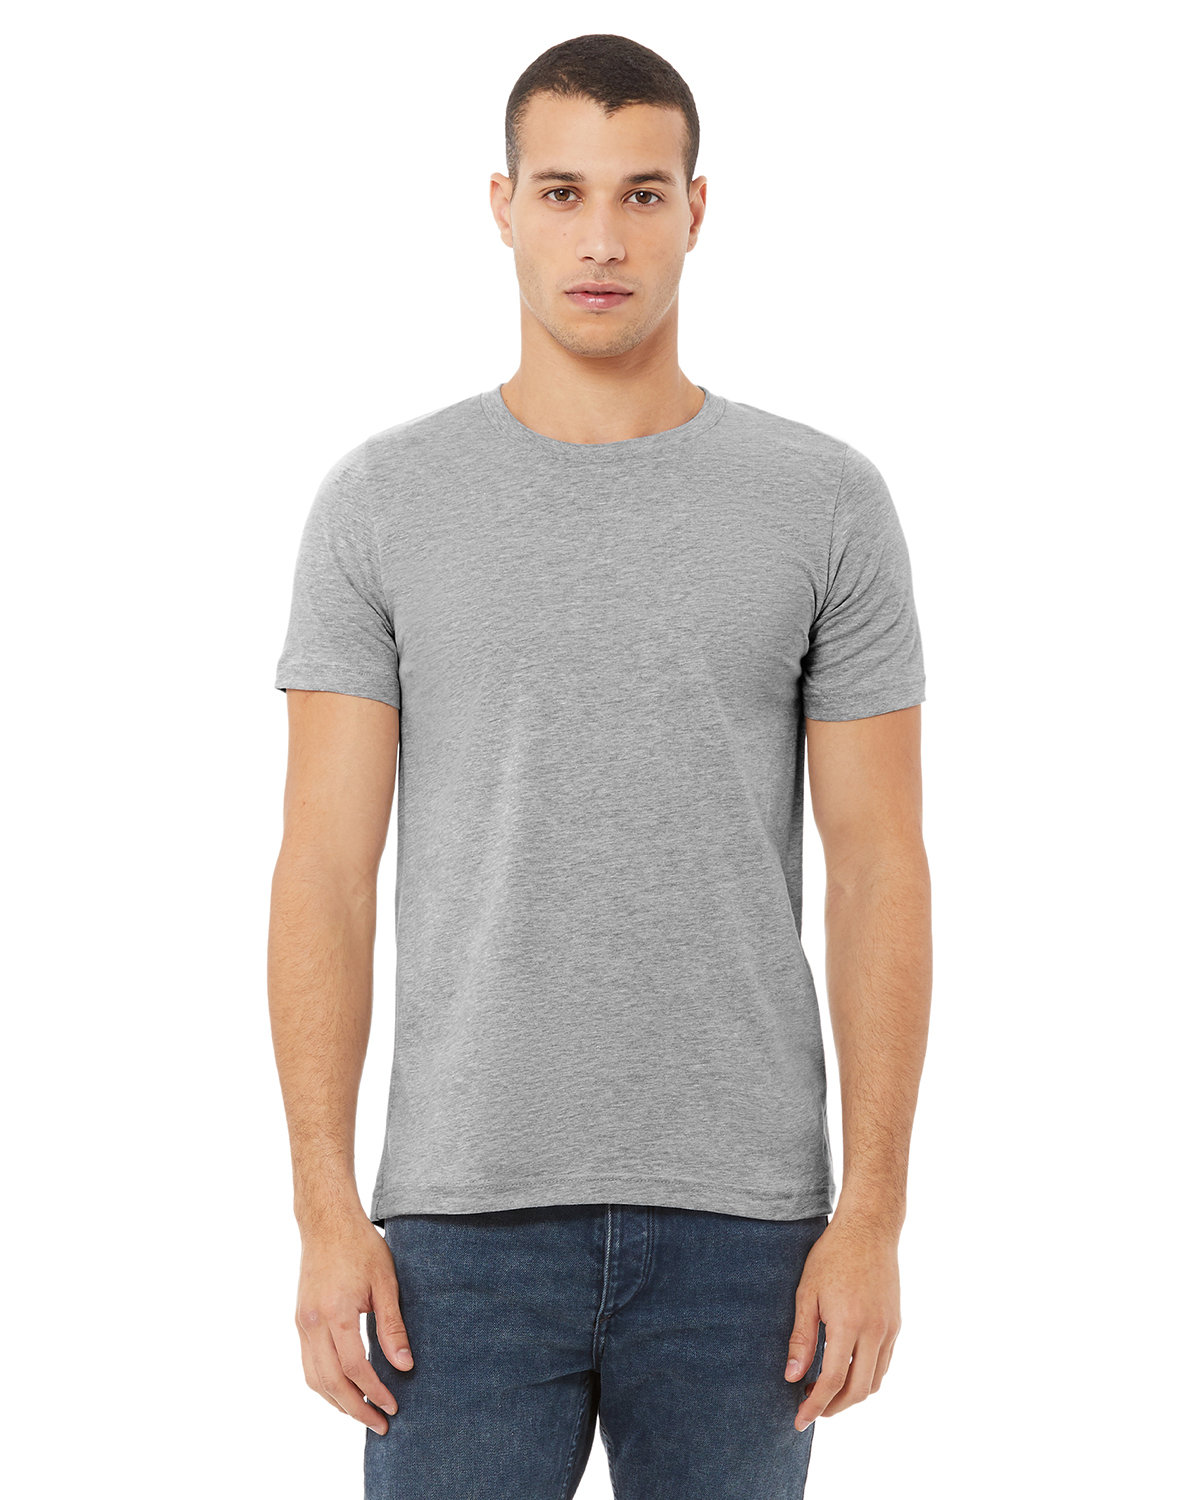 Bella + Canvas Unisex Heather CVC T-Shirt ATHLETIC HEATHER